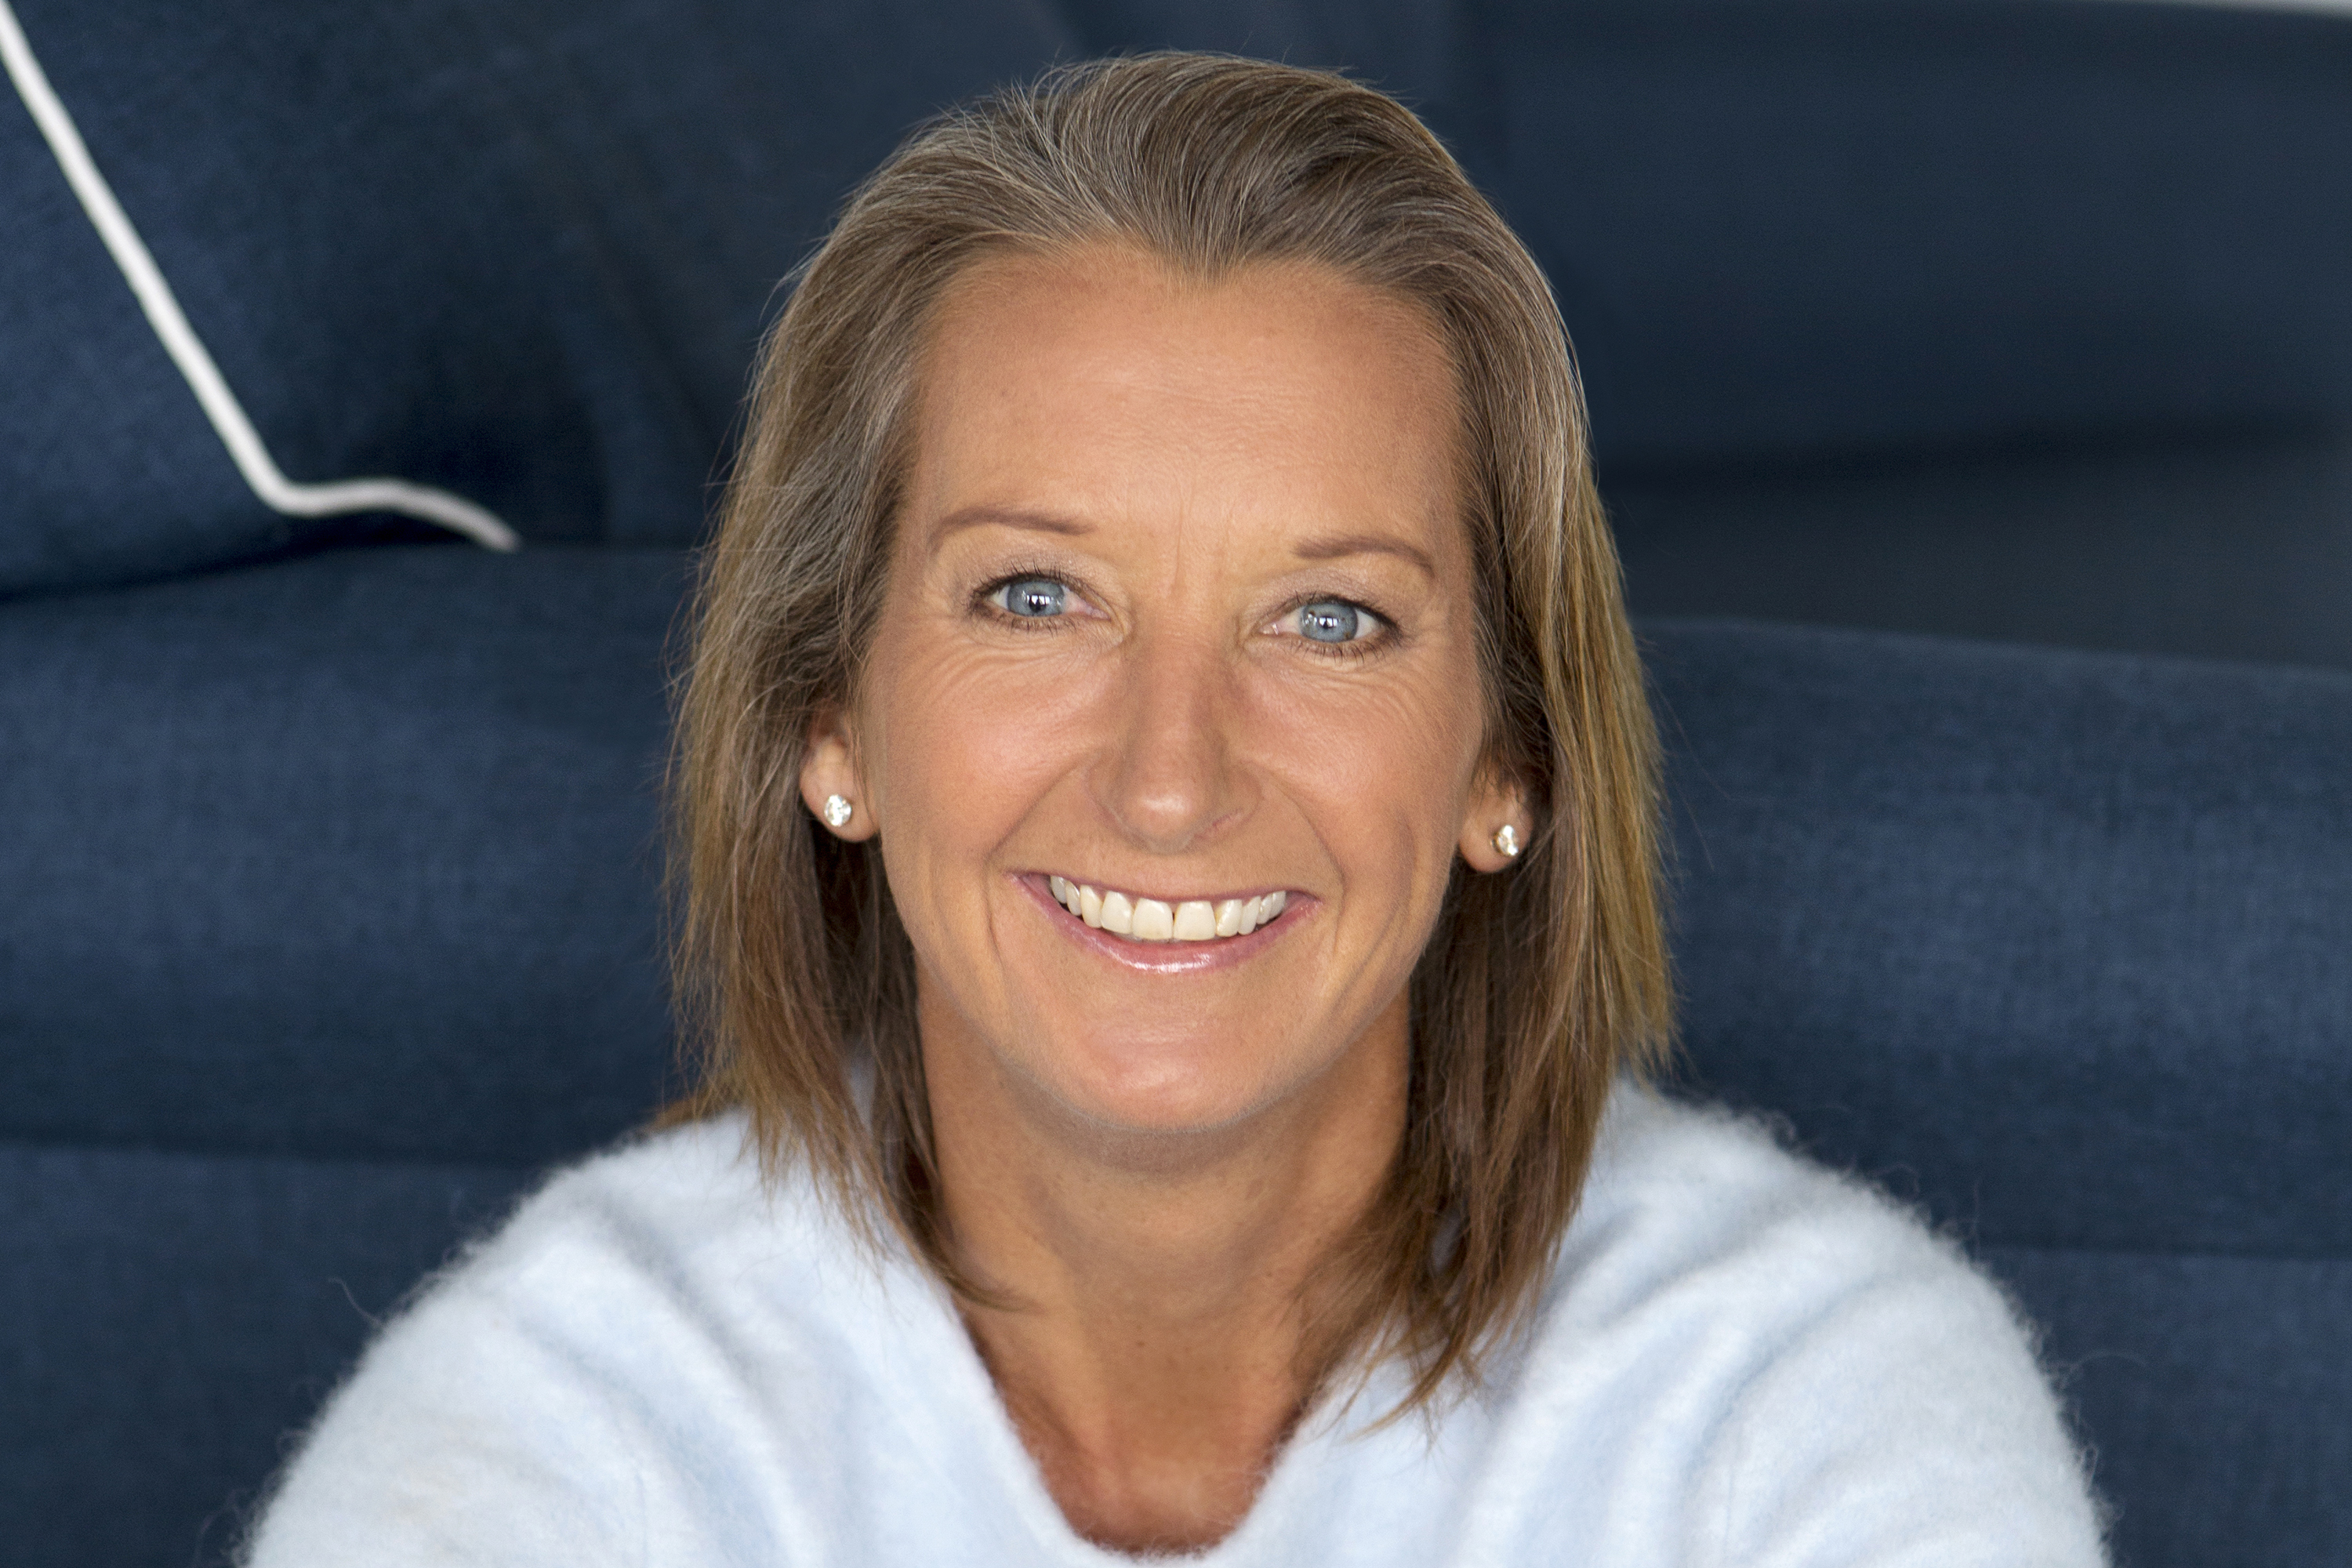 Speakers related to Shane Webcke: Layne Beachley